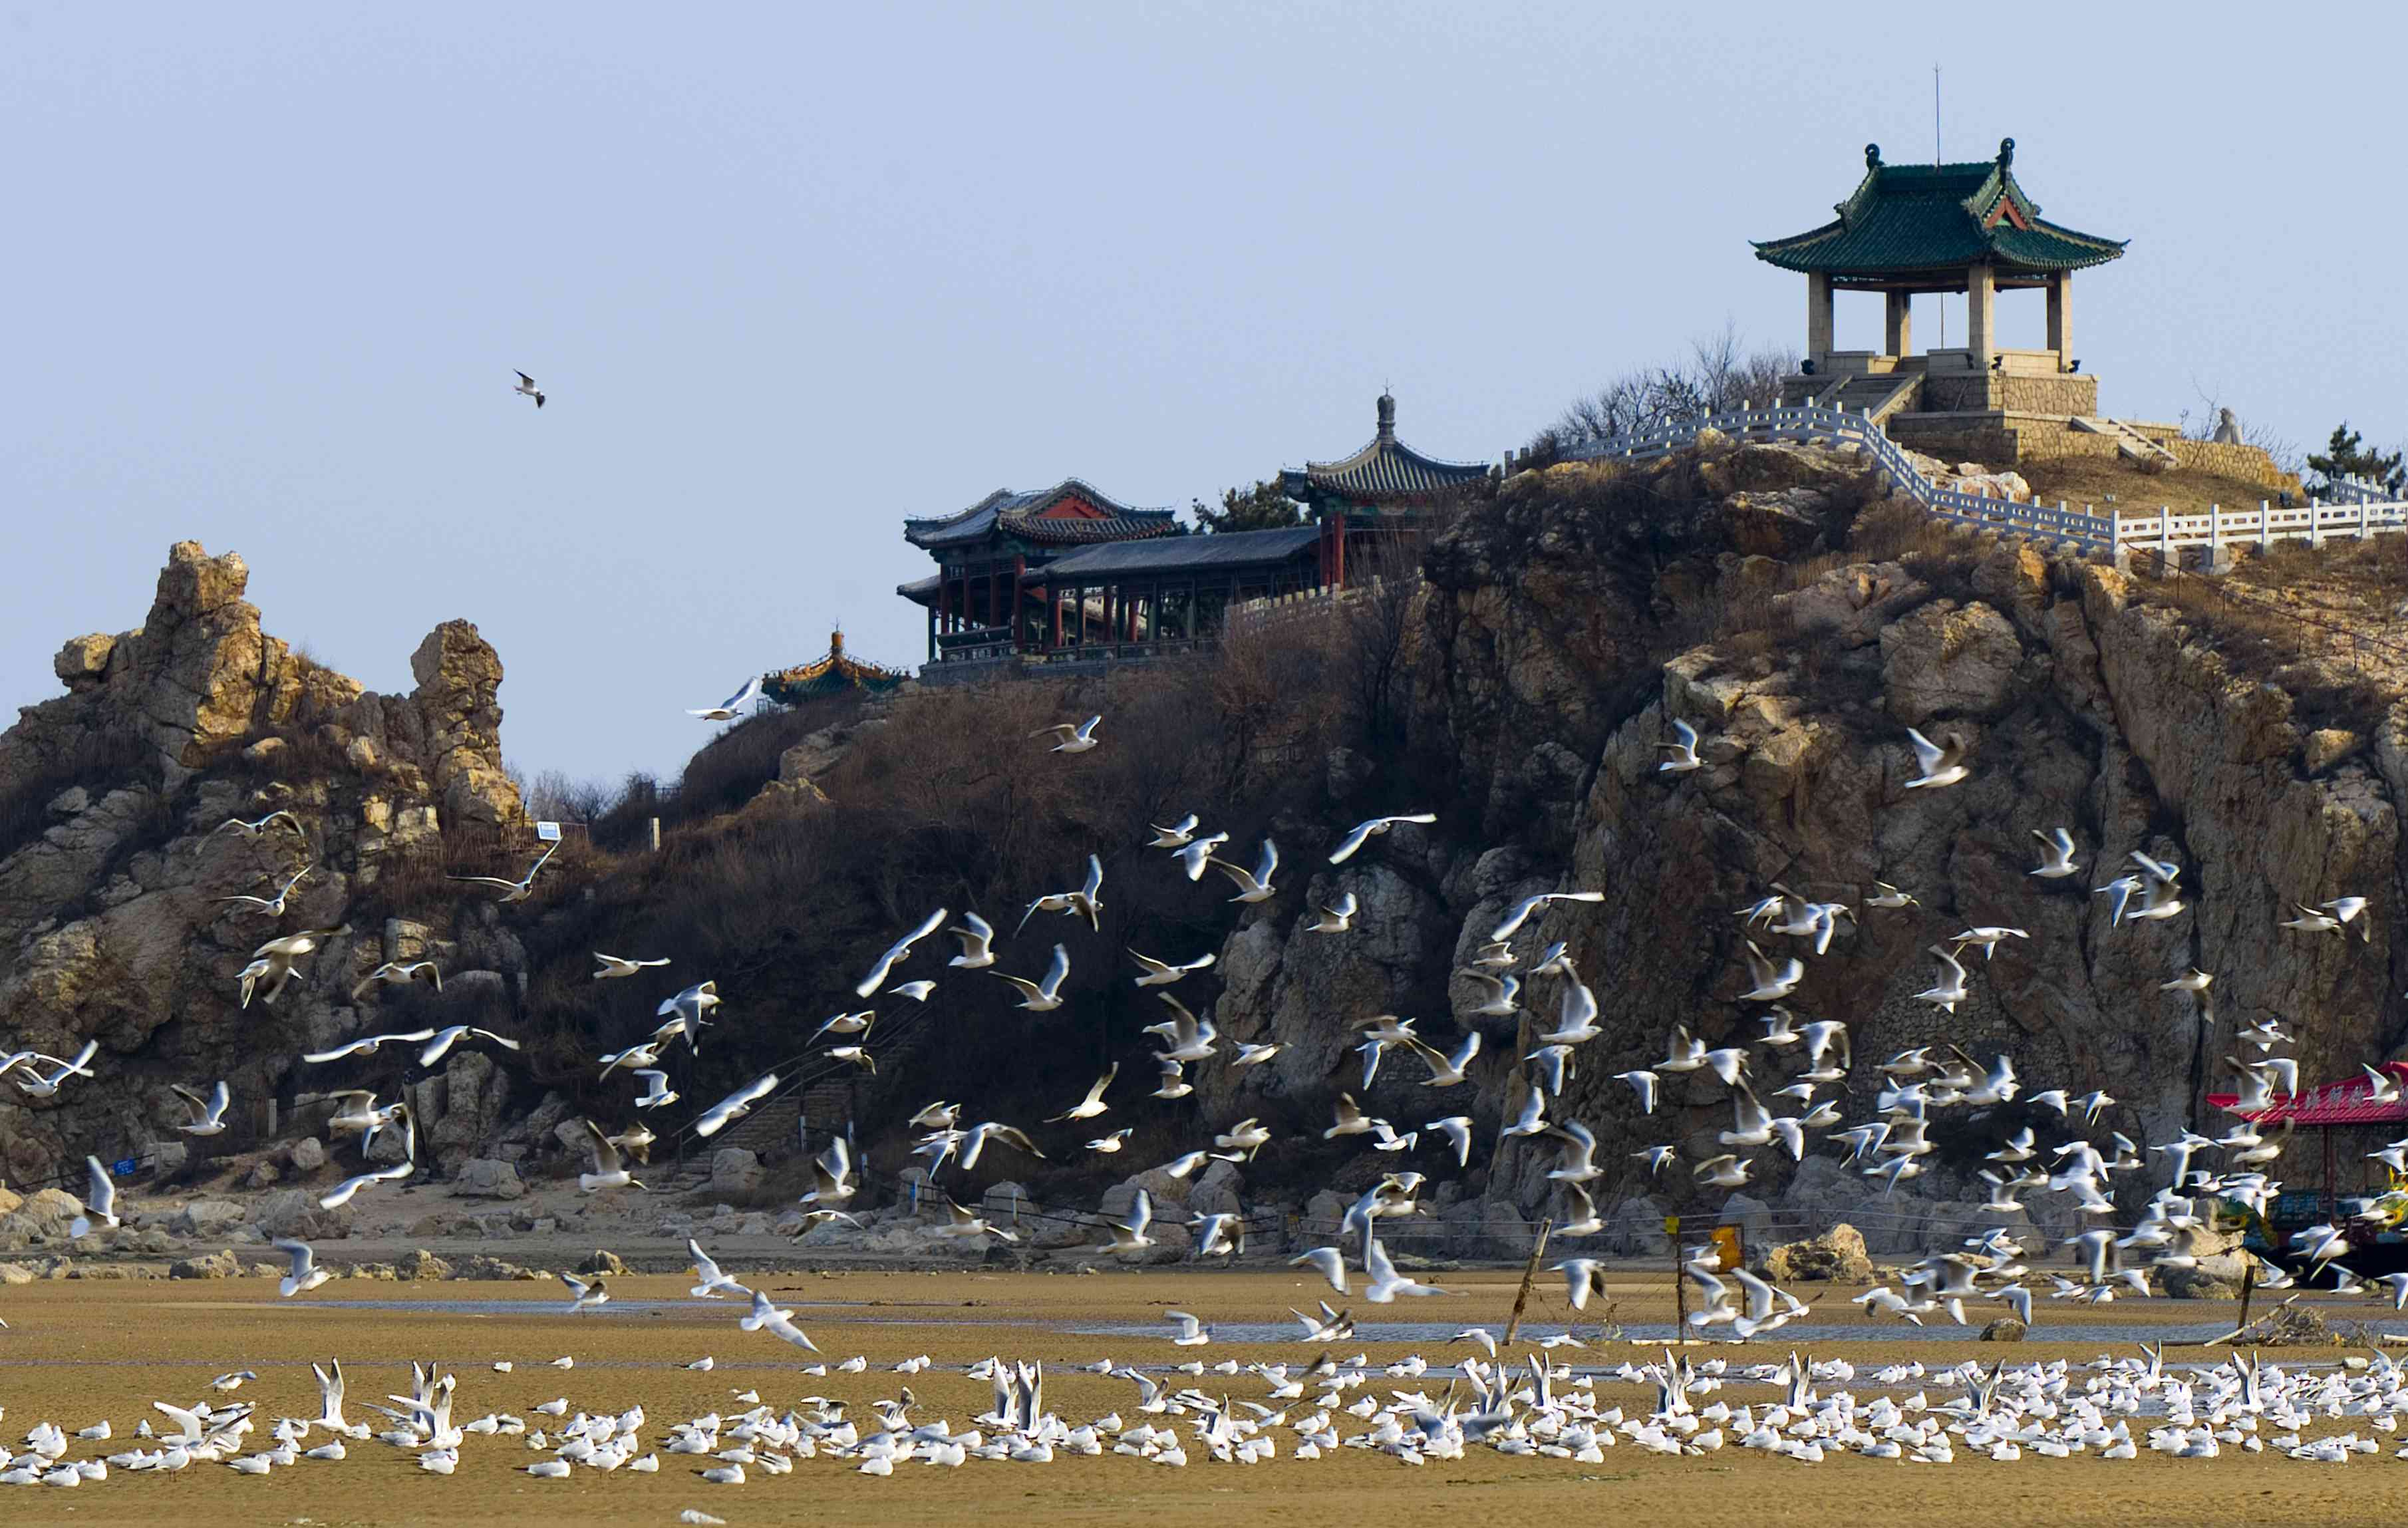 a flock of white birds in the air, on the ground, and in a small pool of water adjacent to a rocky hill in Beidaihe